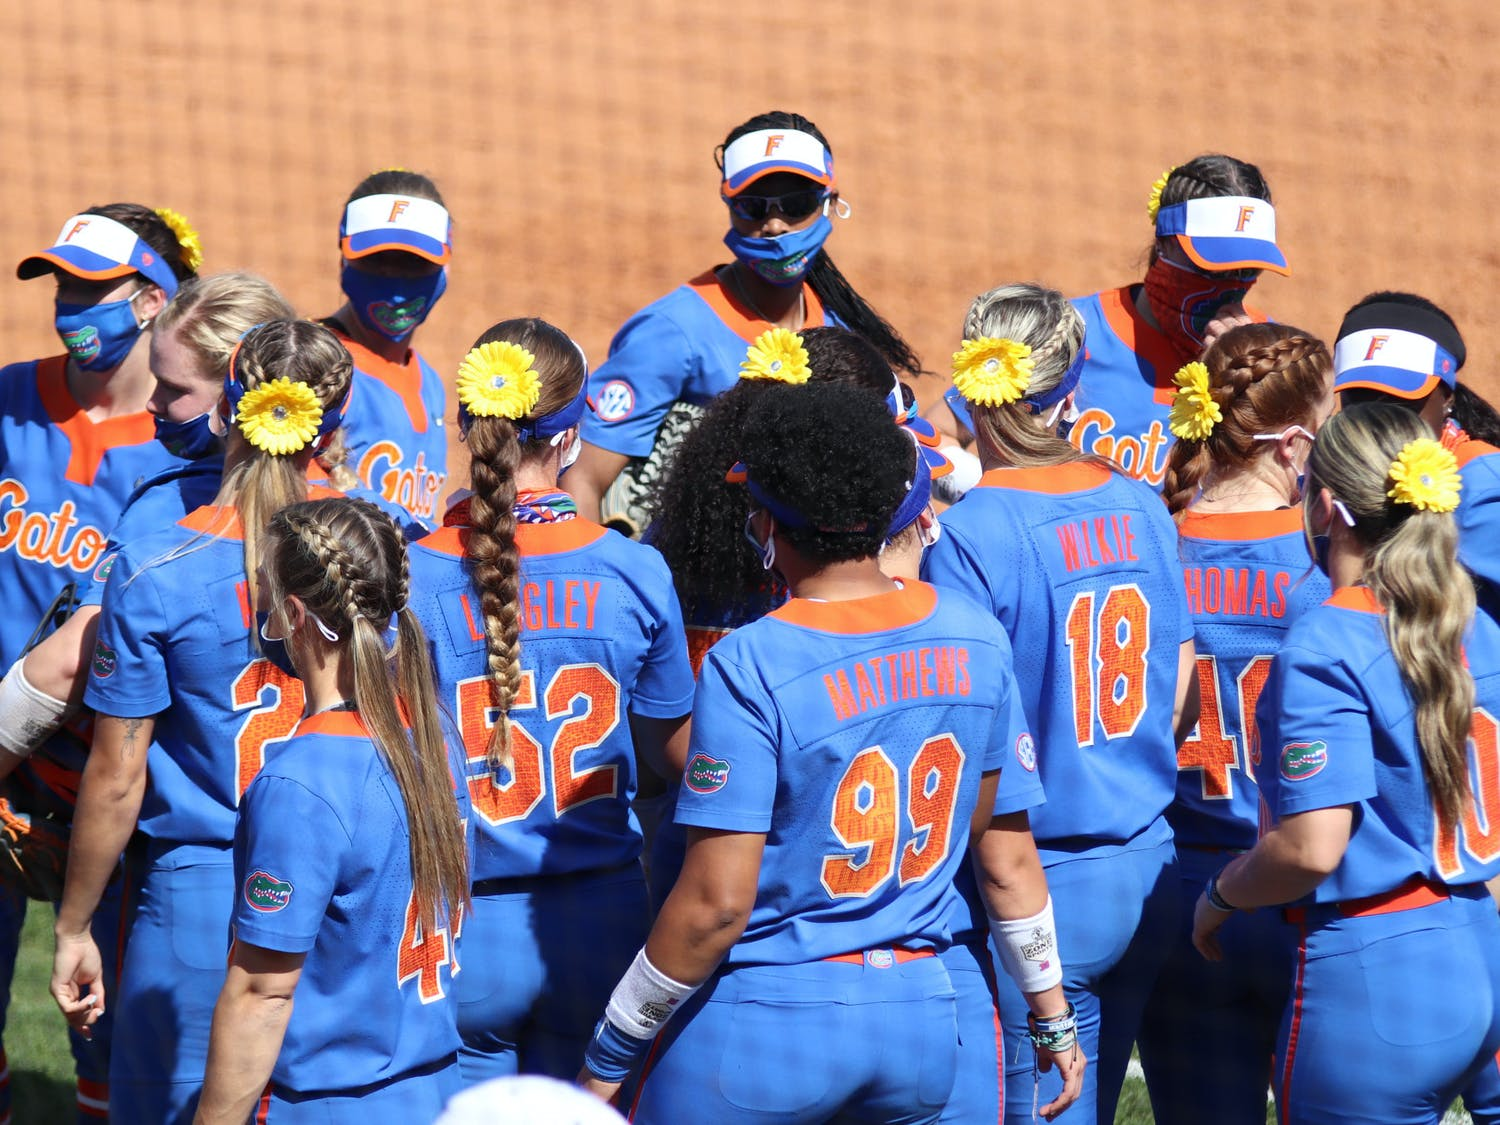 The Florida softball team huddles on February 27 in a game against Louisville. The Gators' season ended Saturday with a second straight Super Regional loss to Georgia.